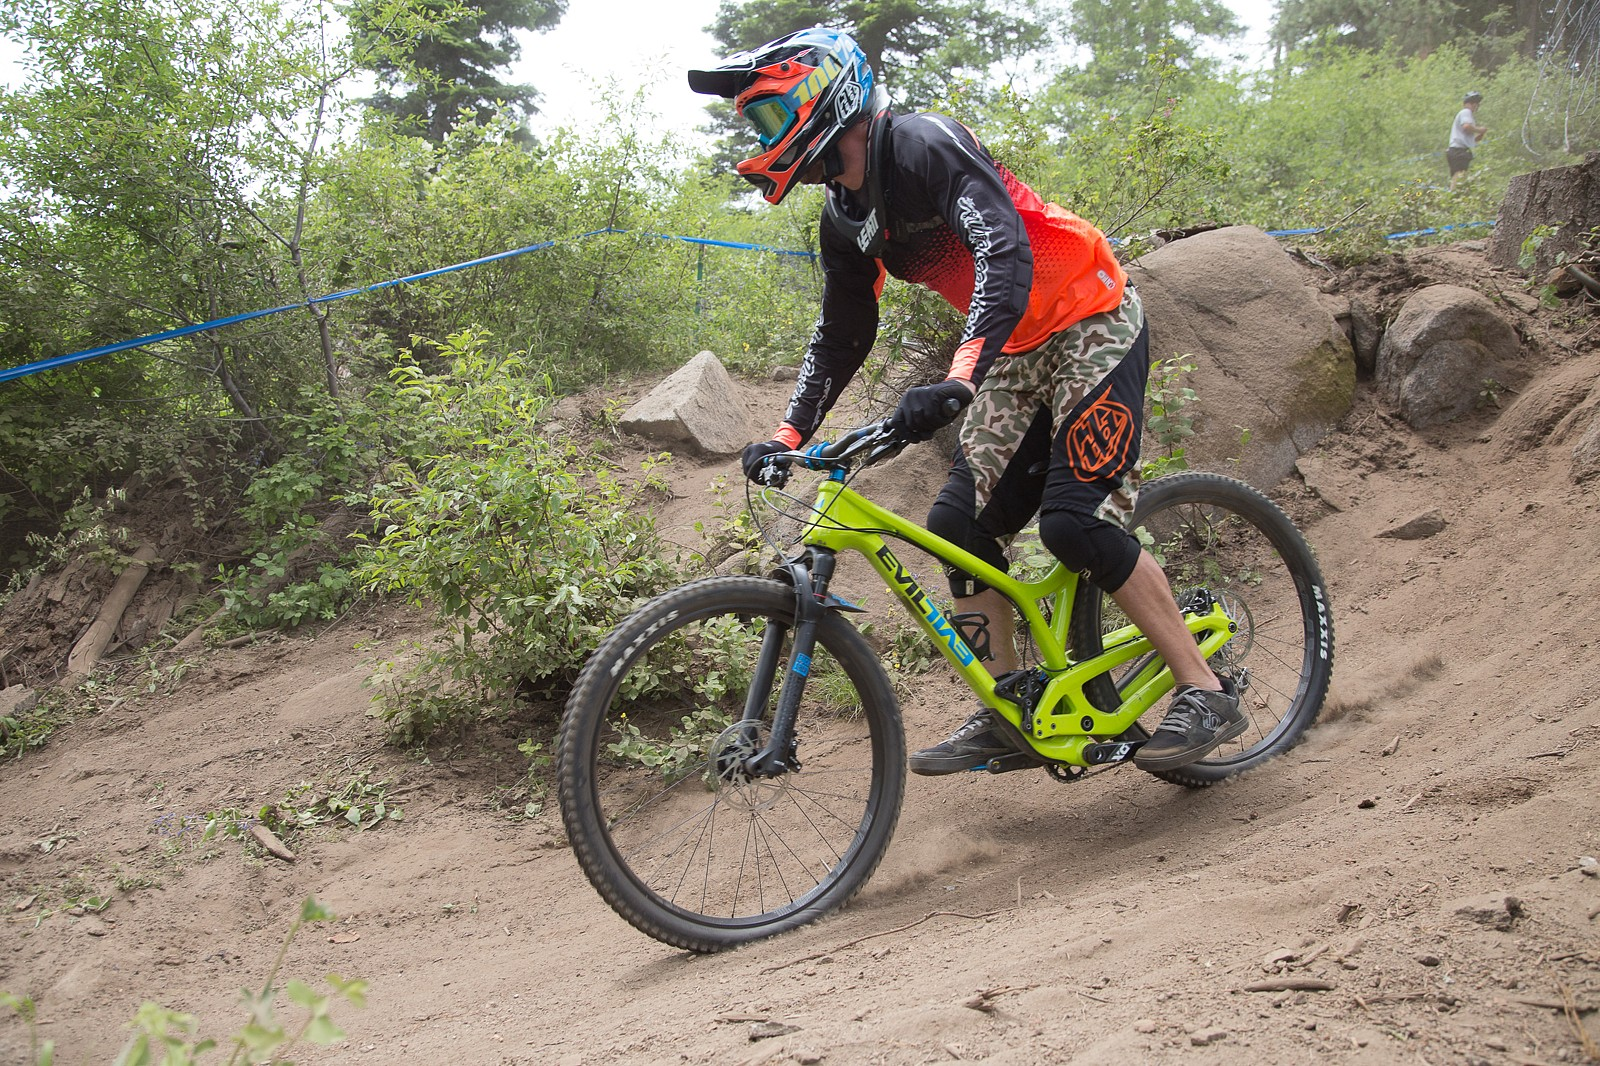 G-Out Project, Tamarack #USDH National-5 - G-Out Project - Tamarack NW Cup / #USDH - Mountain Biking Pictures - Vital MTB